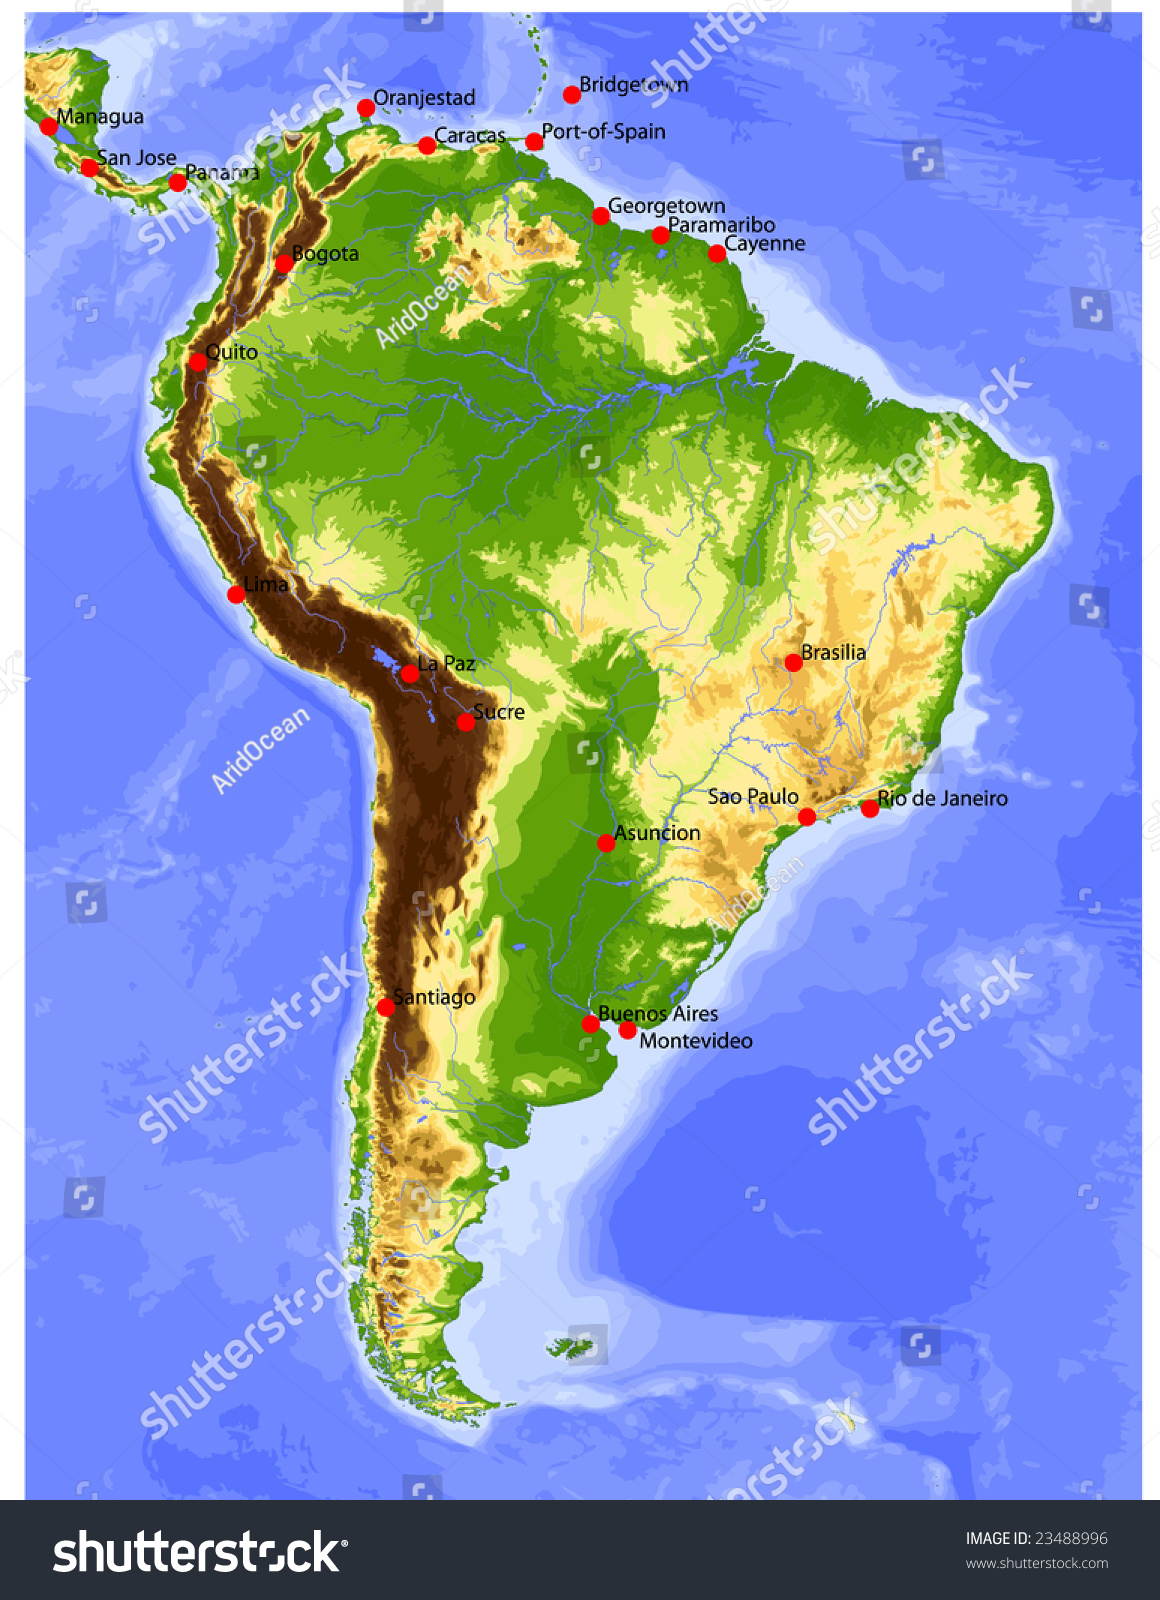 South america physical vector map colored stock vector 23488996 physical vector map colored according to elevation with rivers and selected gumiabroncs Choice Image